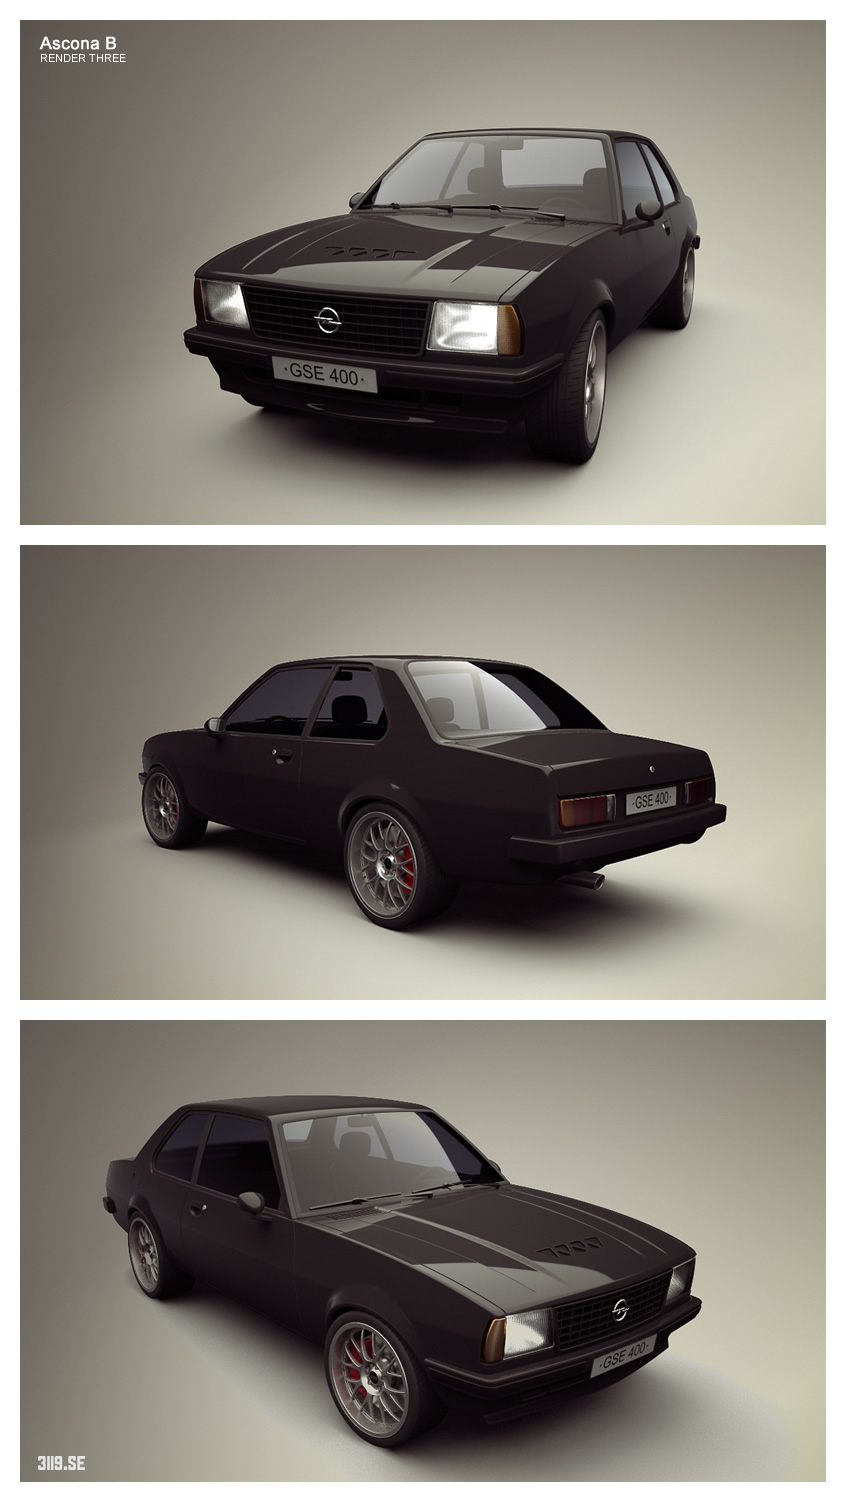 Opel Ascona Render Three by tetsuwan